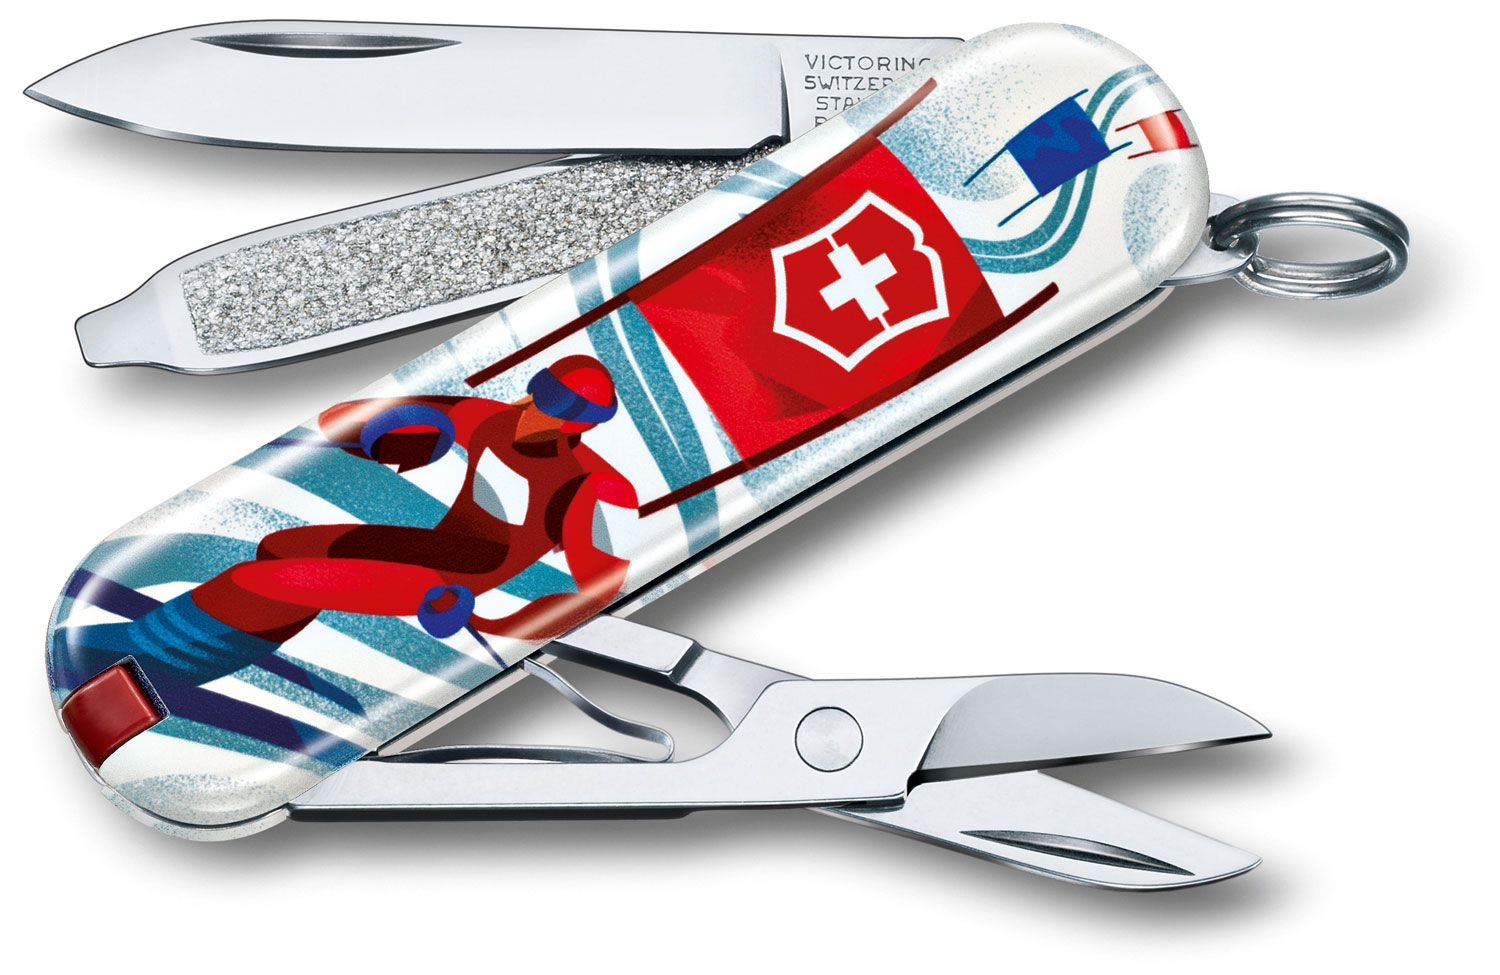 Victorinox Swiss Army 2020 Contest Classic SD Limited Edition Multi-Tool, Ski Race, 2.25 inch Closed